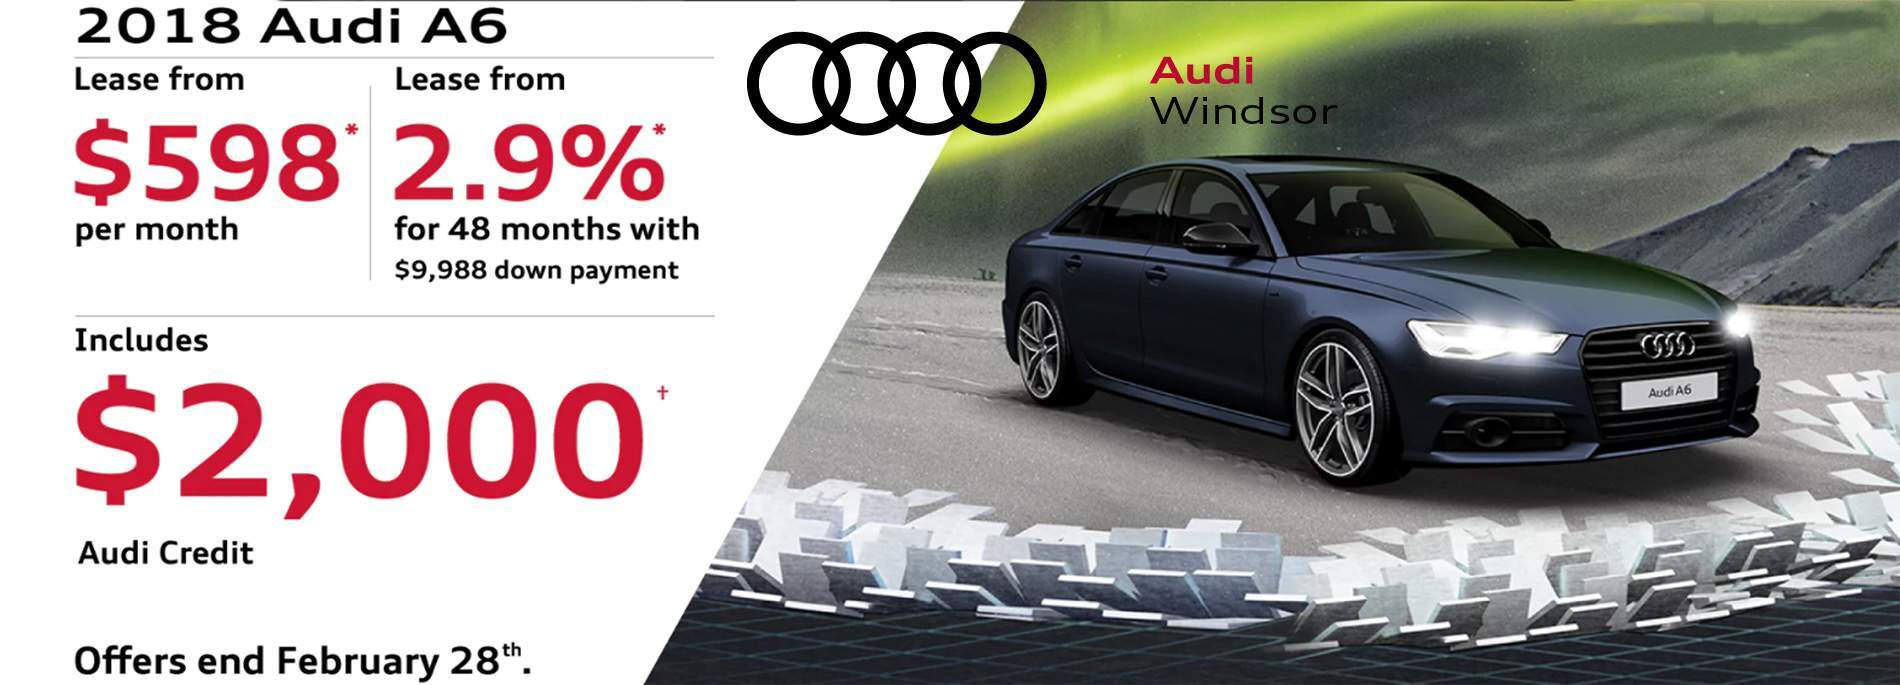 Audi Windsor February 2018 Sales Event